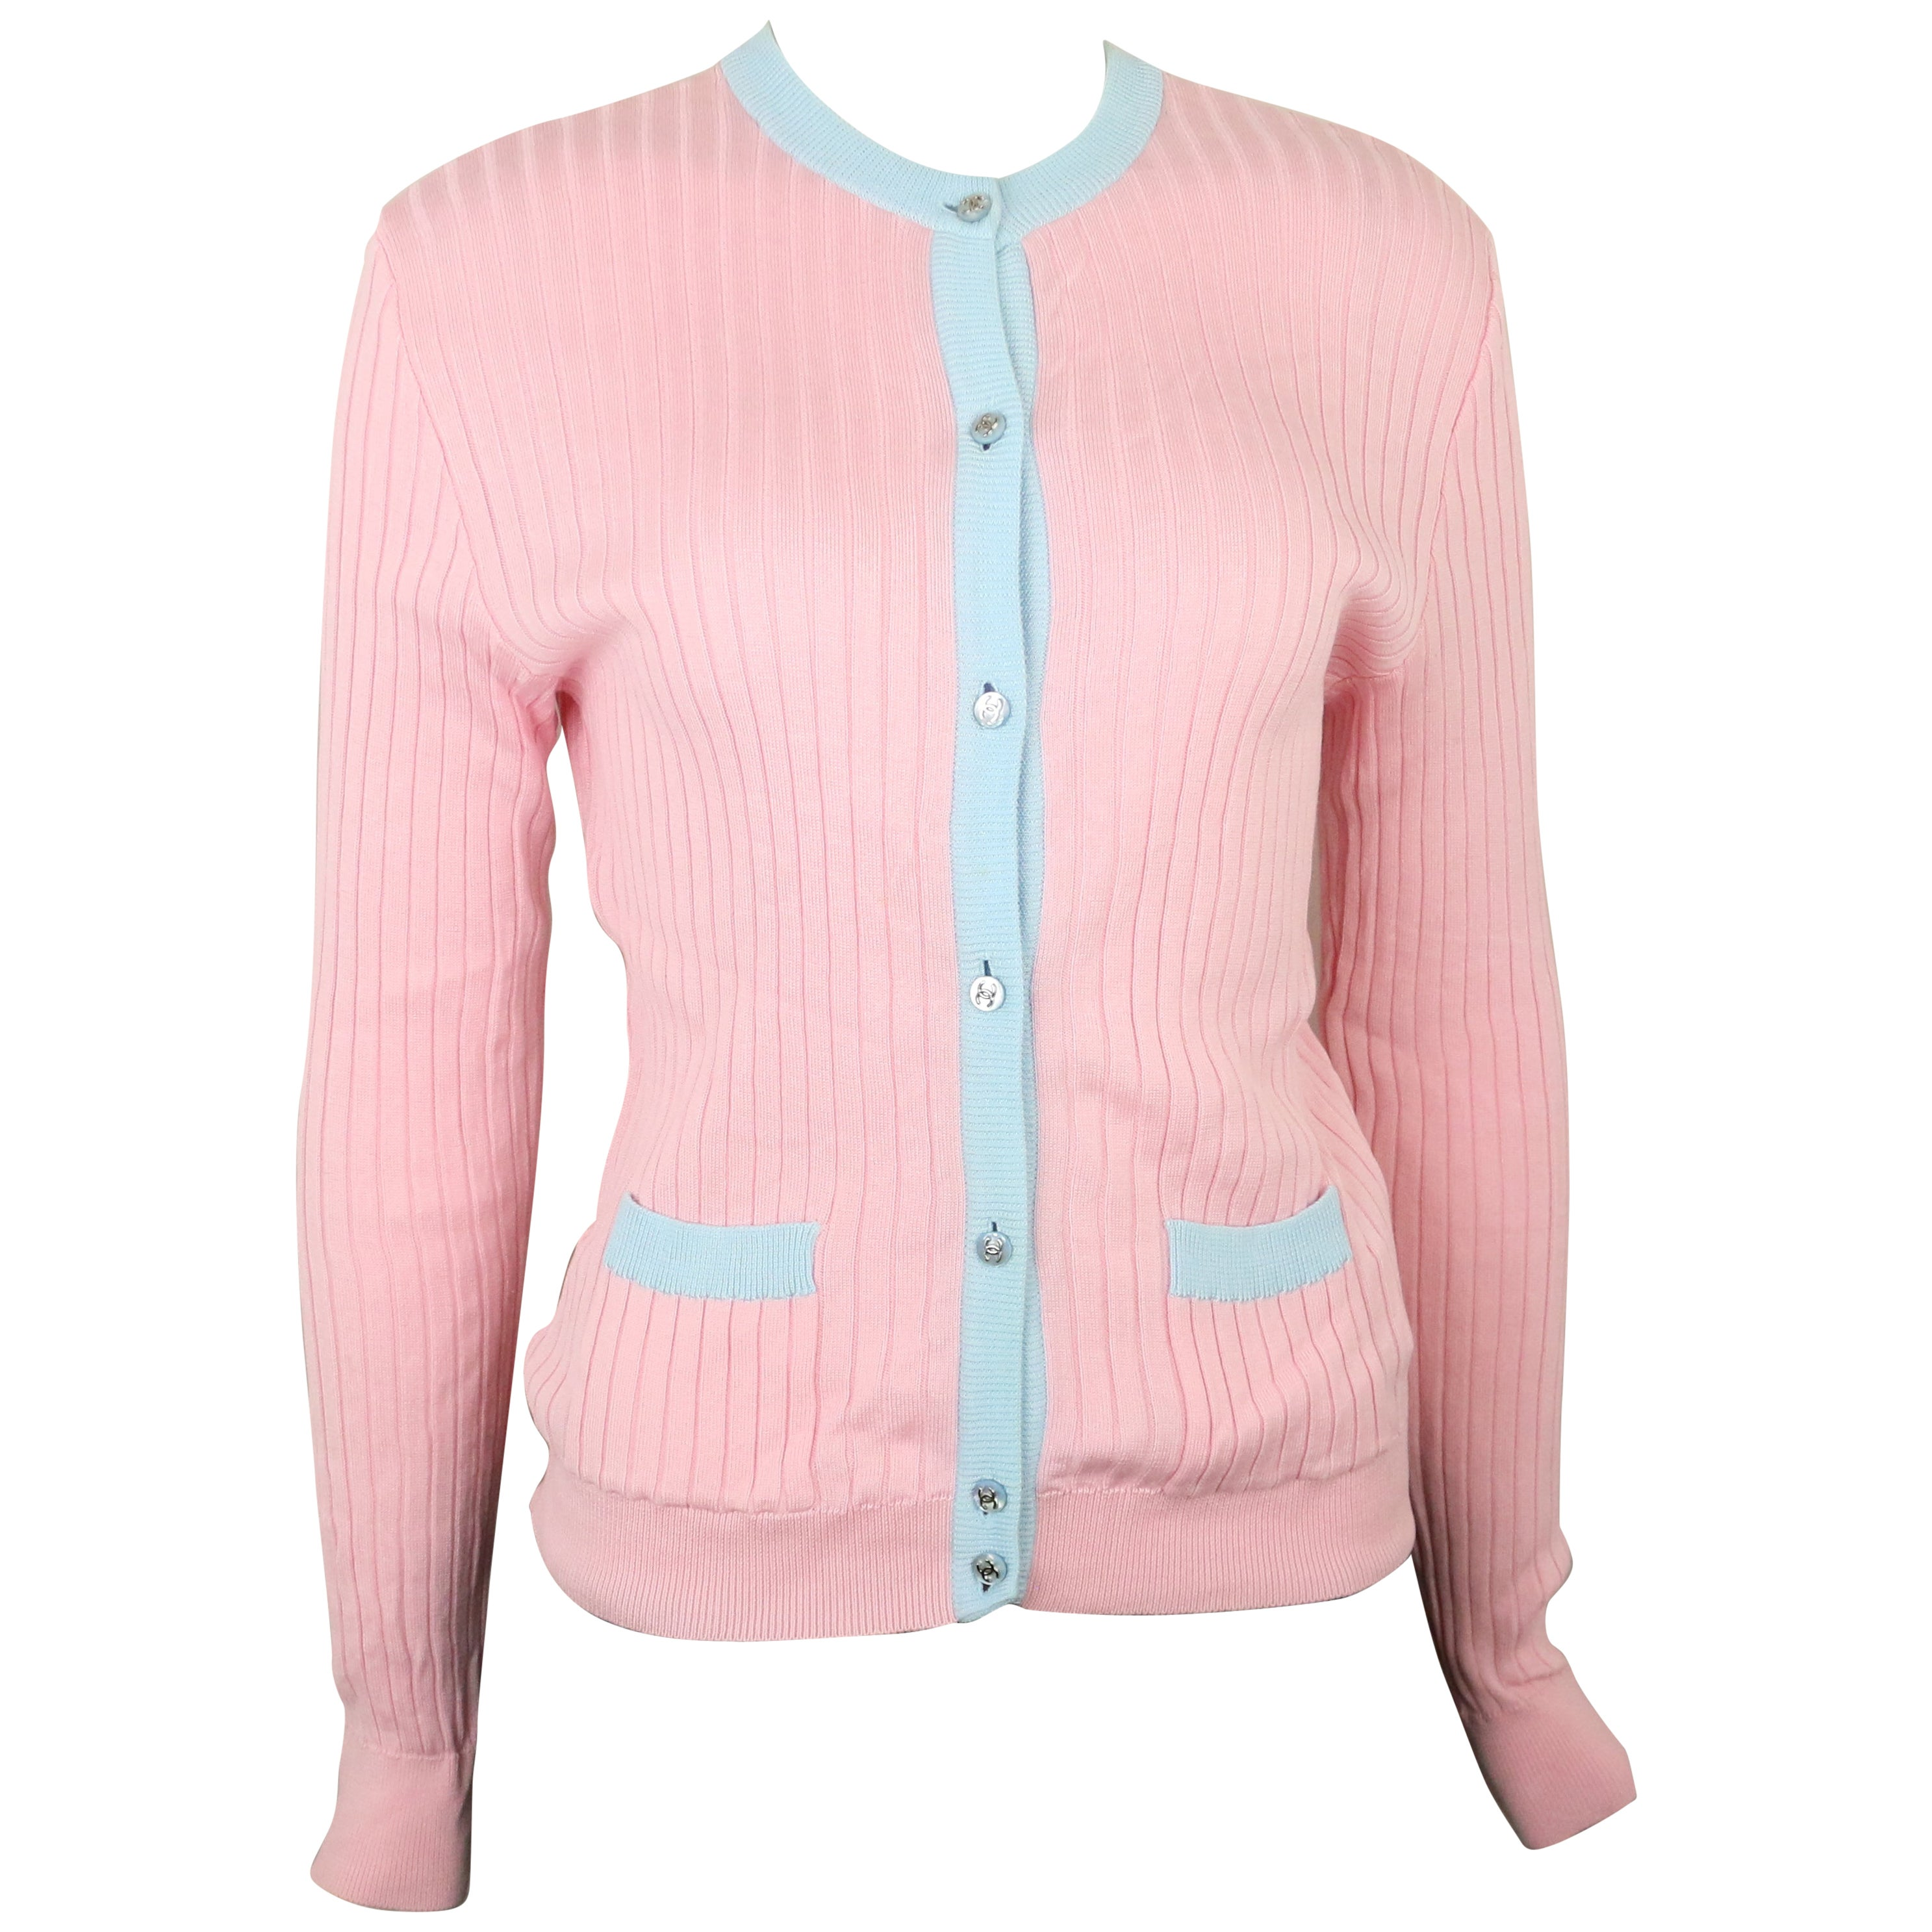 Chanel Pink and Blue Trimming Cardigan